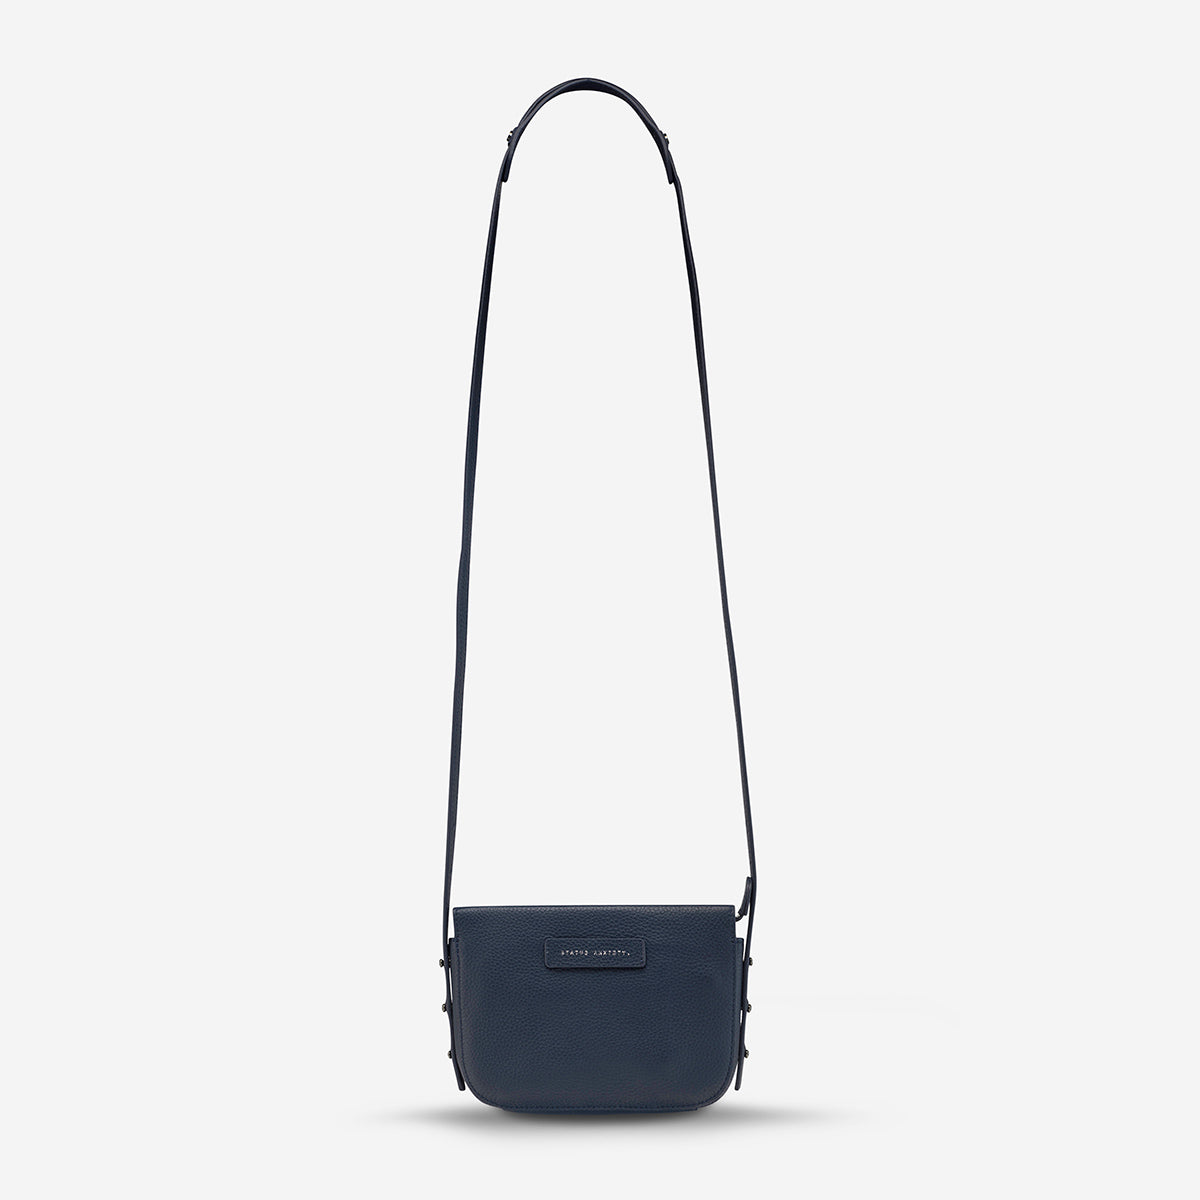 Status Anxiety In Her Command Women's Leather Crossbody Bag - Navy Blue